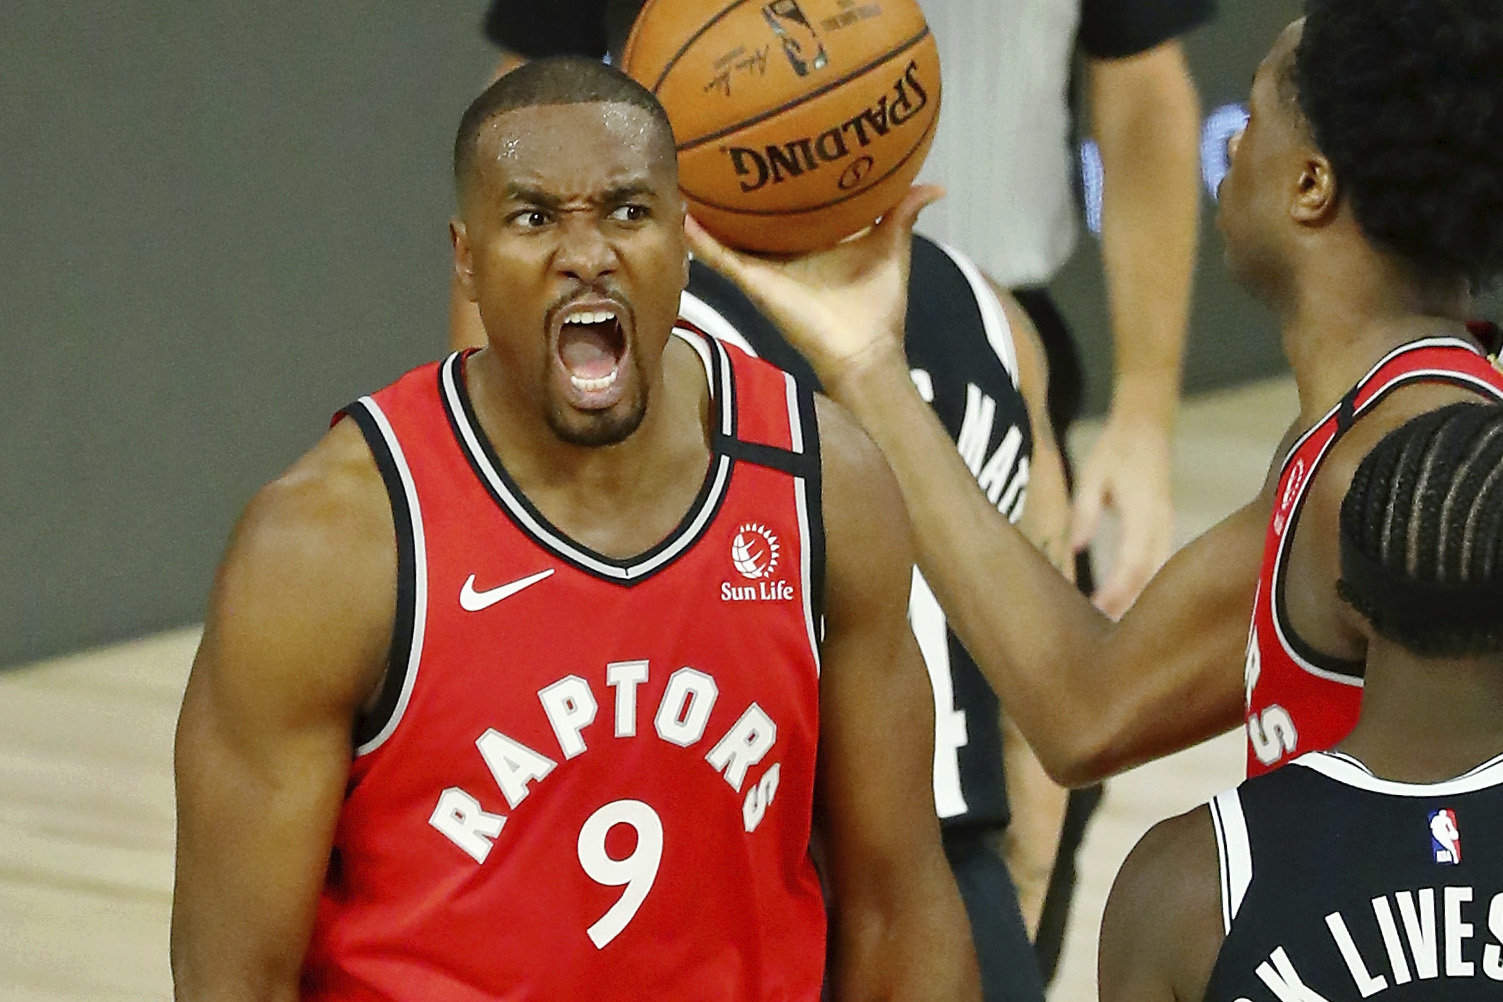 Raptors lose Serge Ibaka to Clippers in free agency